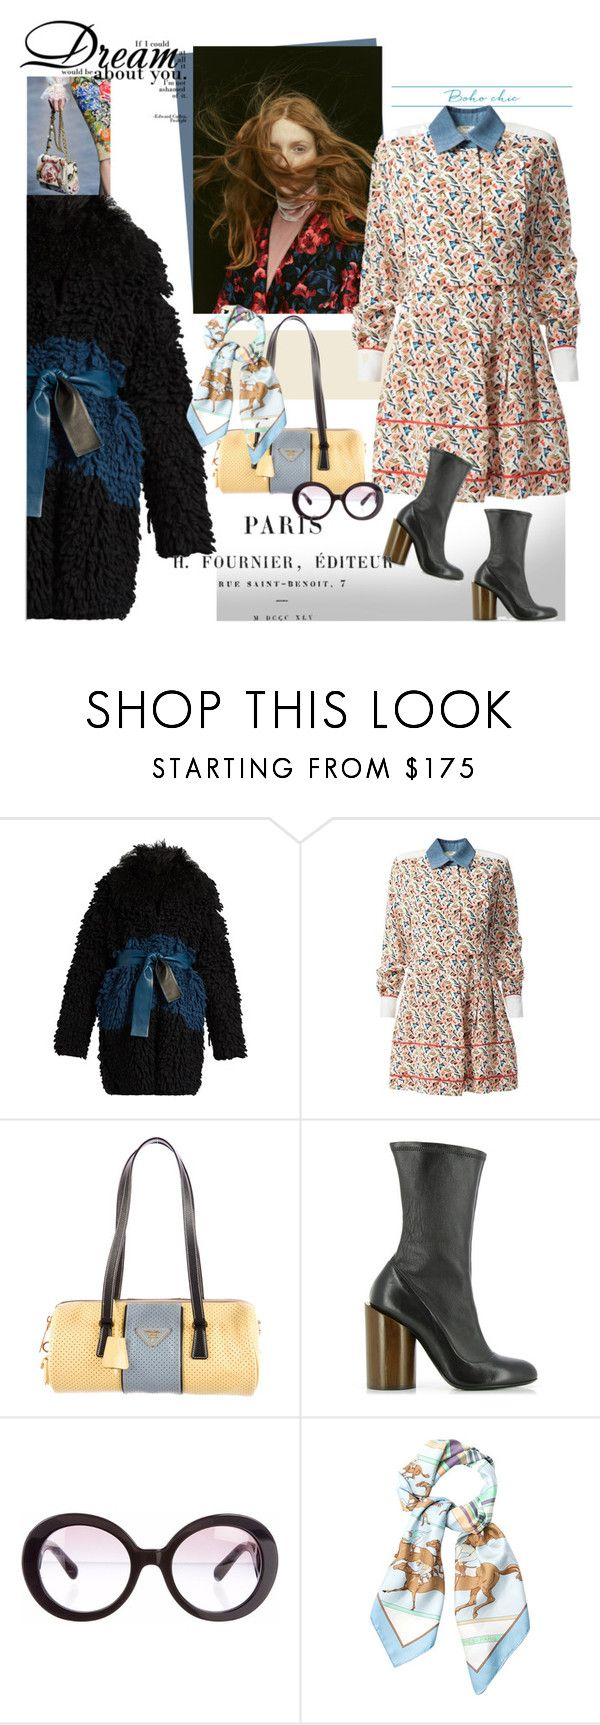 """""""January 3,2017"""" by anny951 ❤ liked on Polyvore featuring Fendi, Prada, Givenchy and Hermès"""